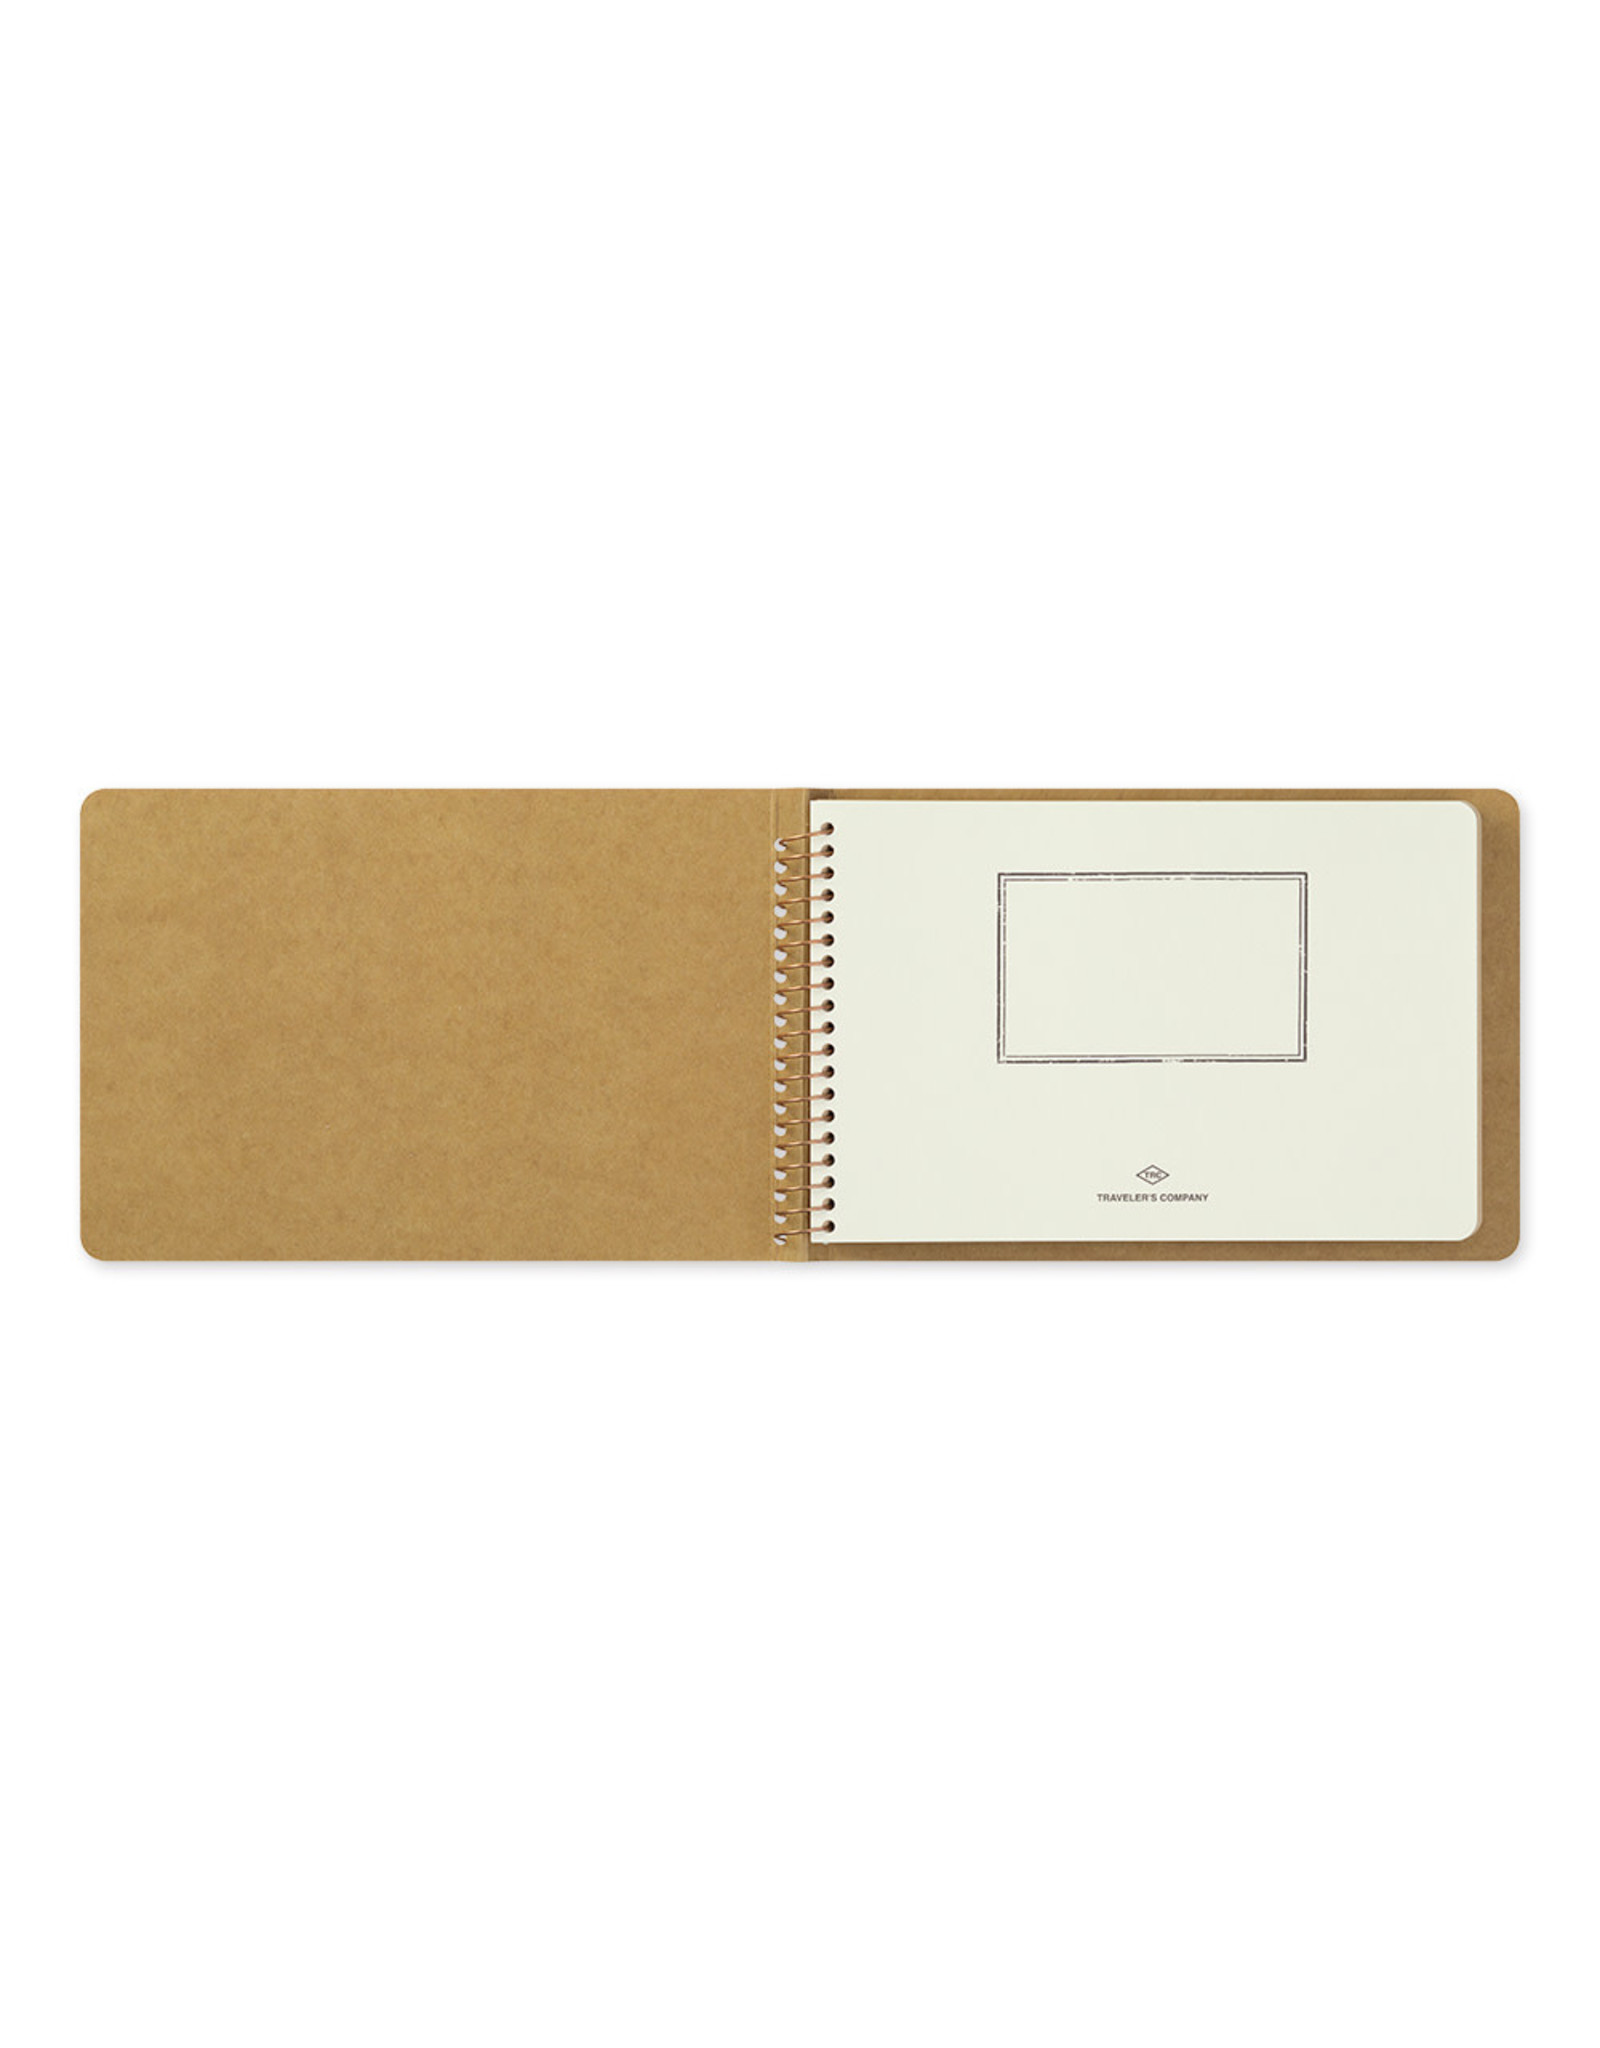 Traveler's Company SPIRAL RING NOTEBOOK B6 BLANK DW KRAFT PAPER 80 SHEETS (160 PAGES)